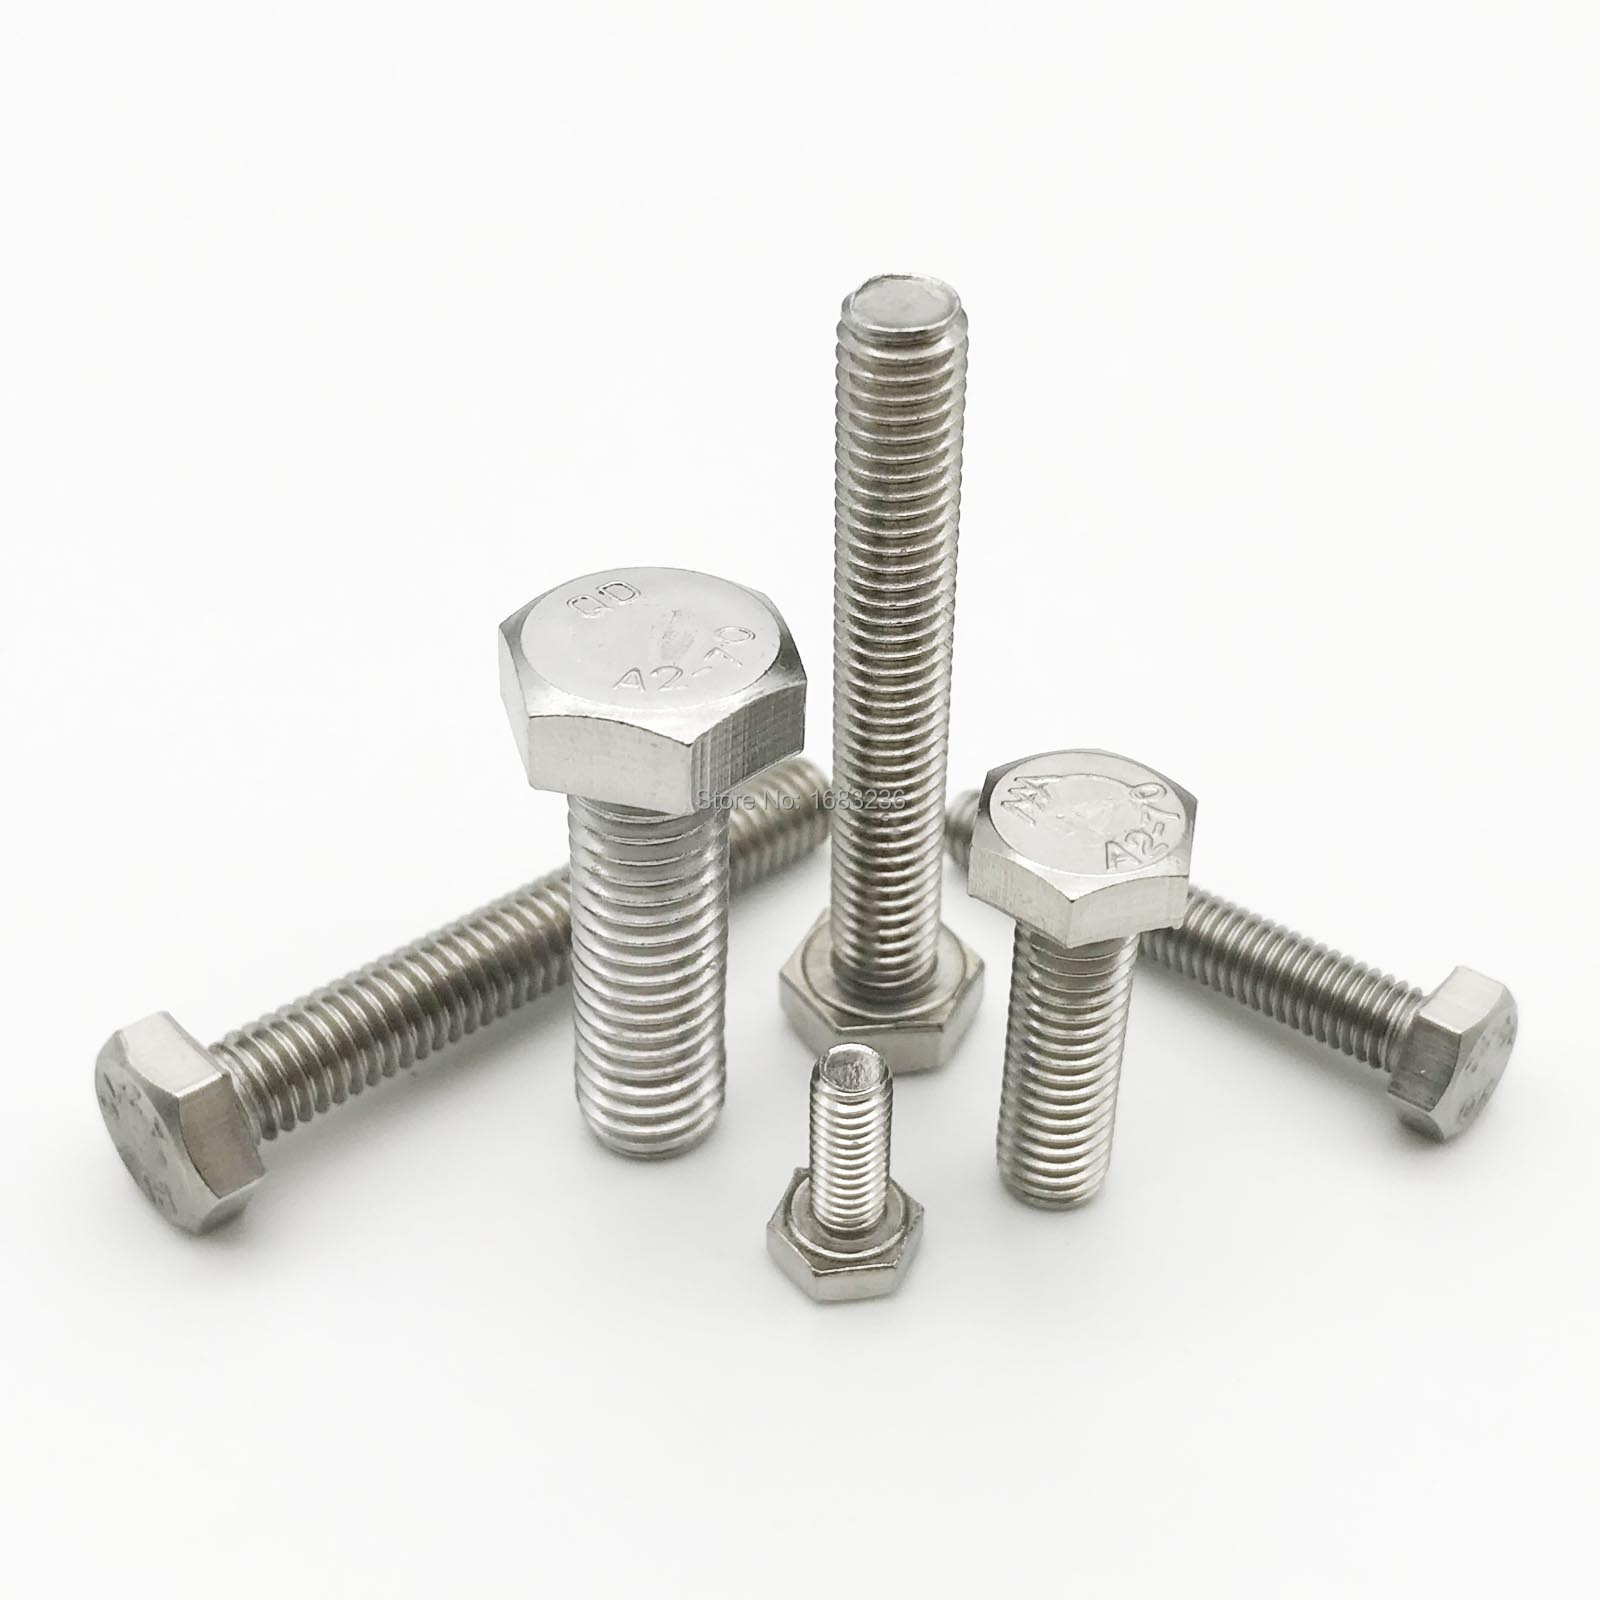 Passivated Finish M5-0.8 Thread Size Hex Washer Head 20 mm Length Metric 18-8 Stainless Steel Thread Rolling Screw for Metal Pack of 25